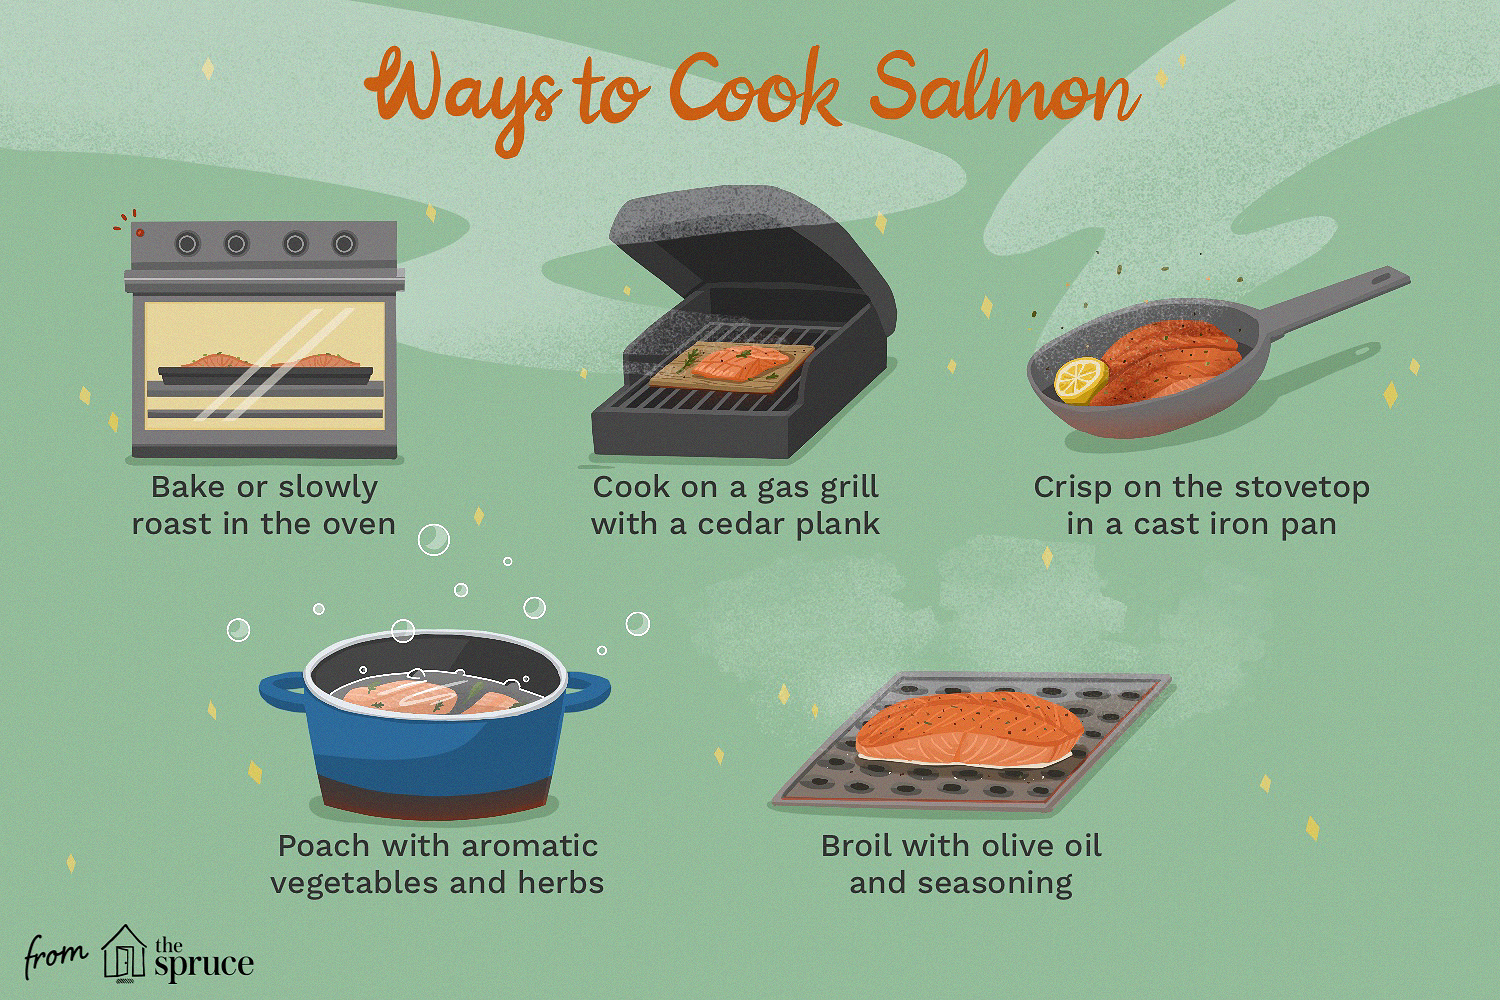 illustration that shows 5 different ways to cook salmon